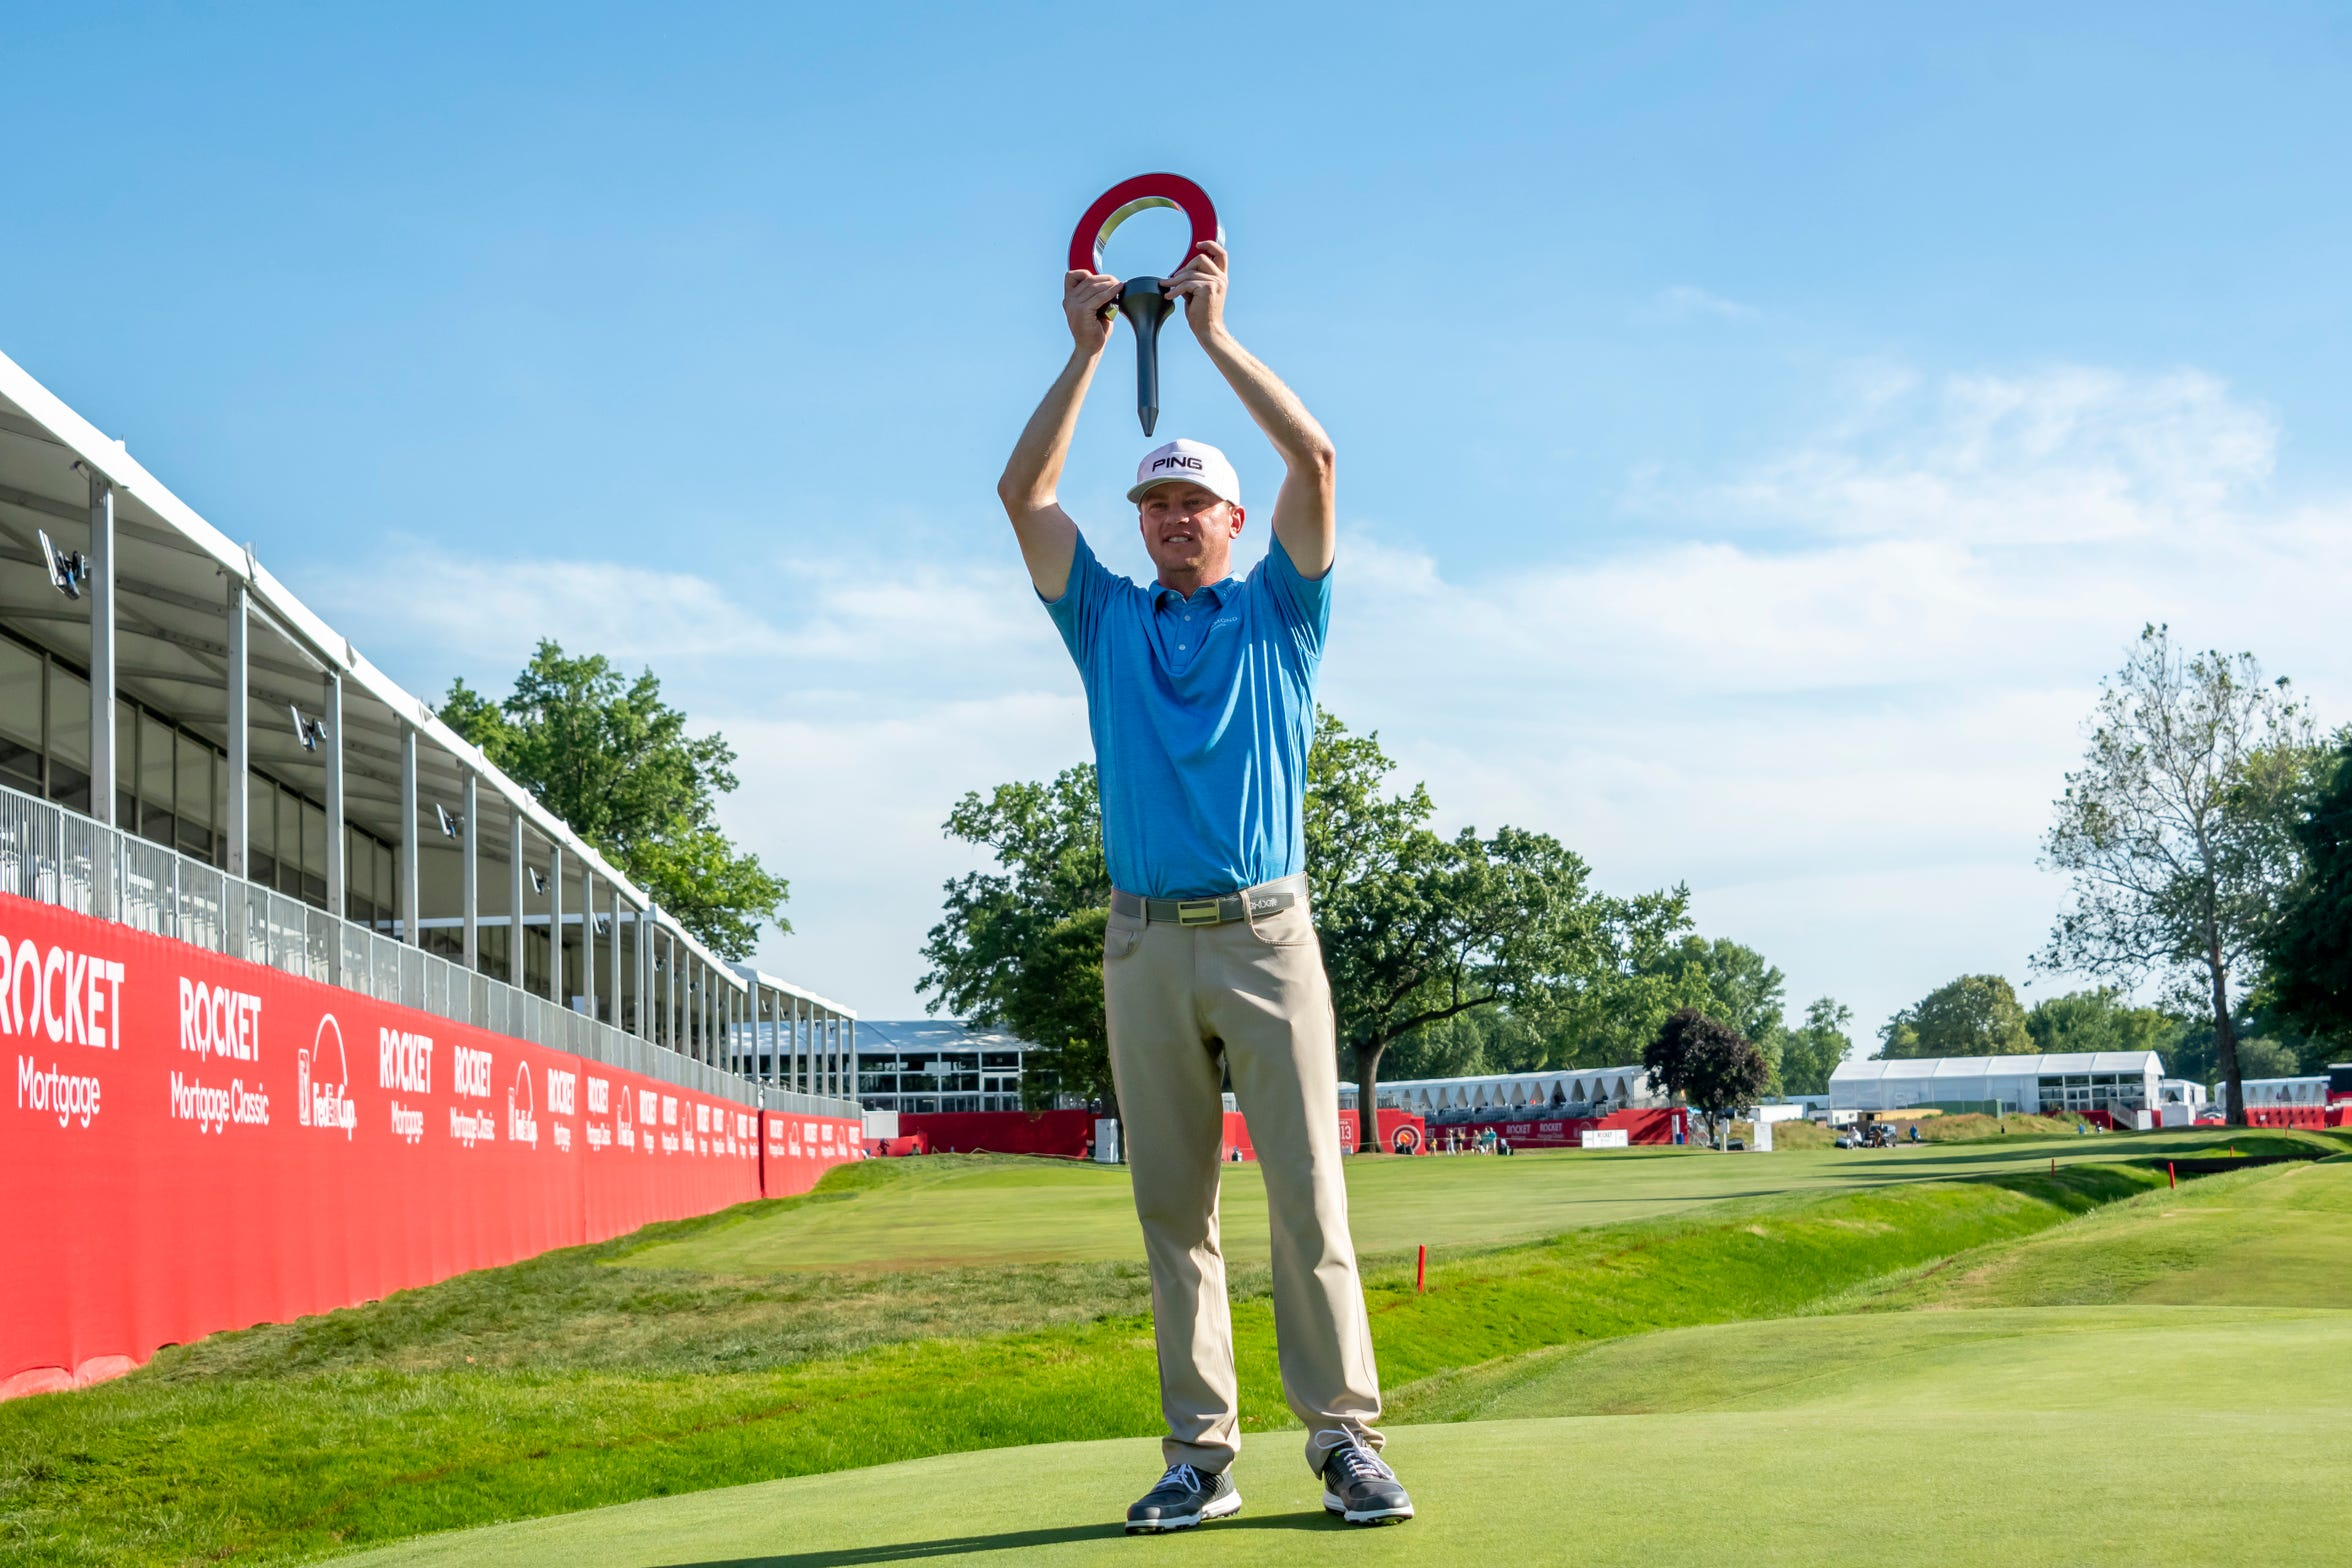 Nate Lashley holds the trophy after winning the Rocket Mortgage Classic golf tournament at the Detroit Golf Club in June.